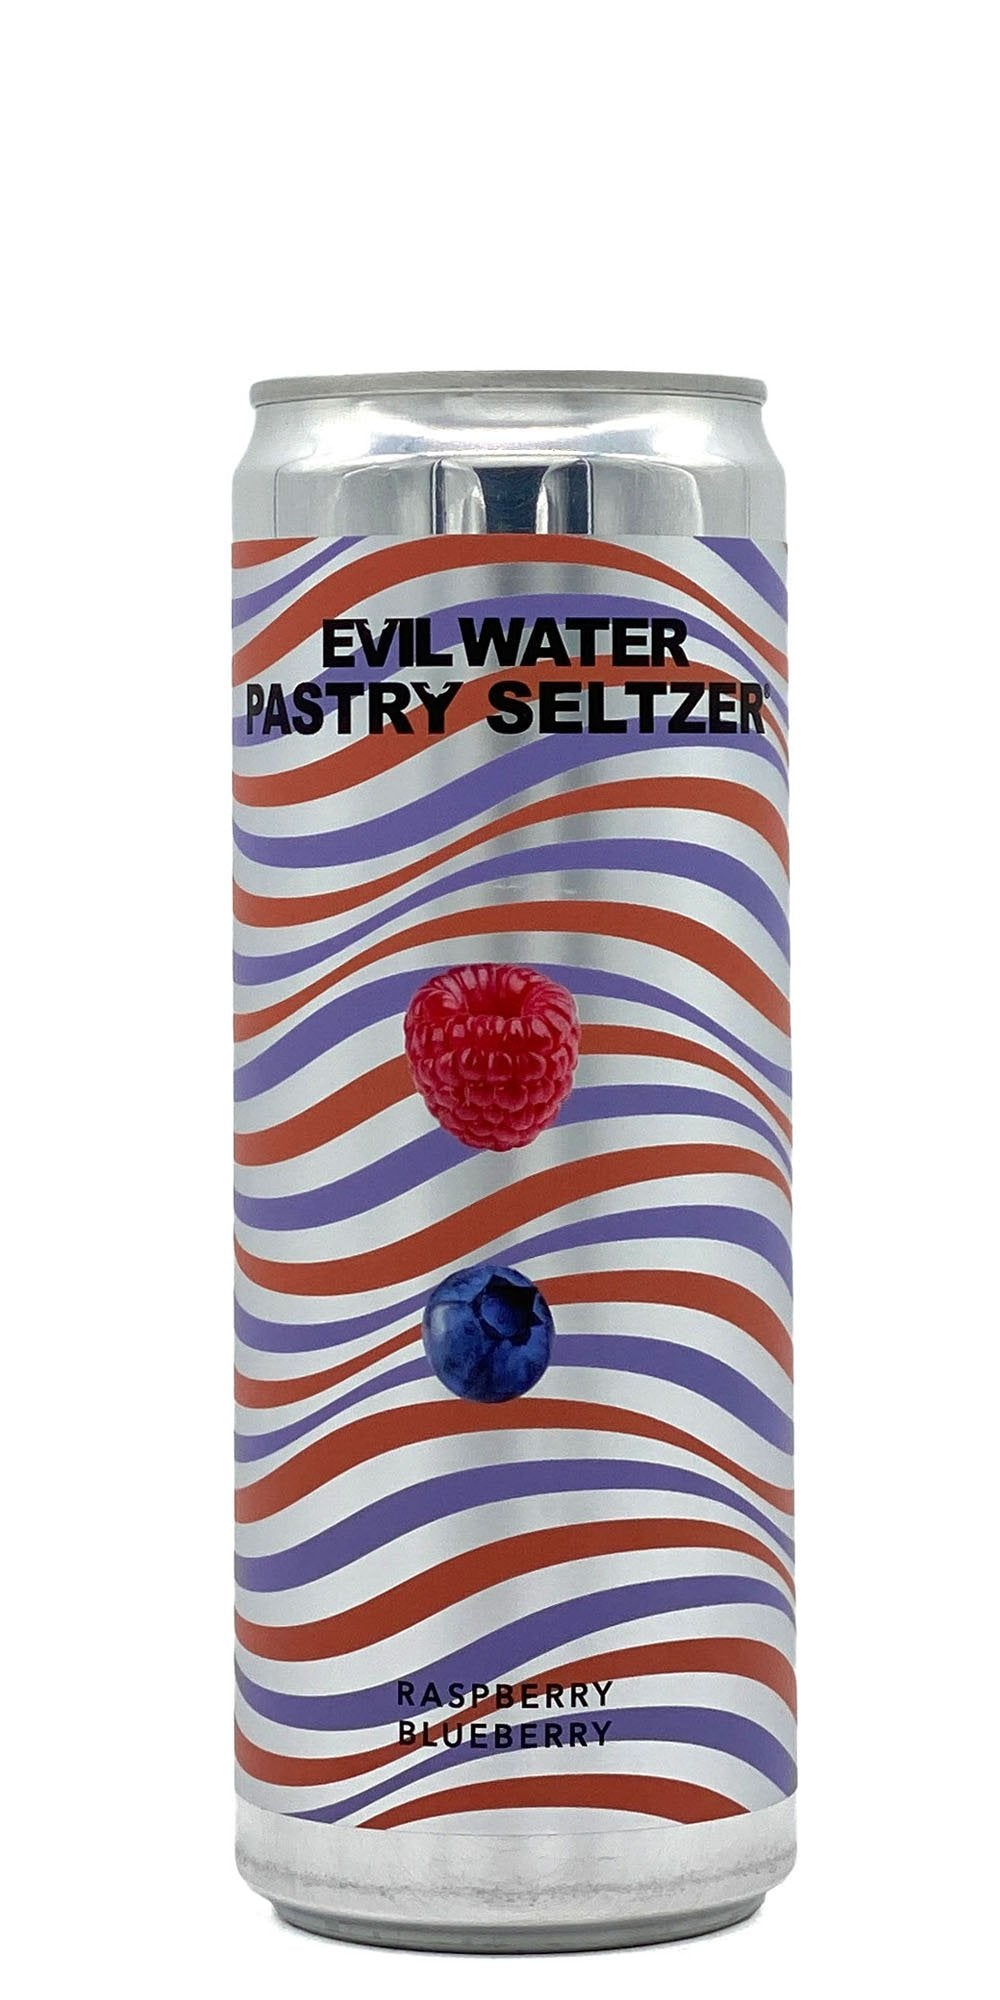 Evil Water - Pastry Seltzer: Raspberry, Blueberry